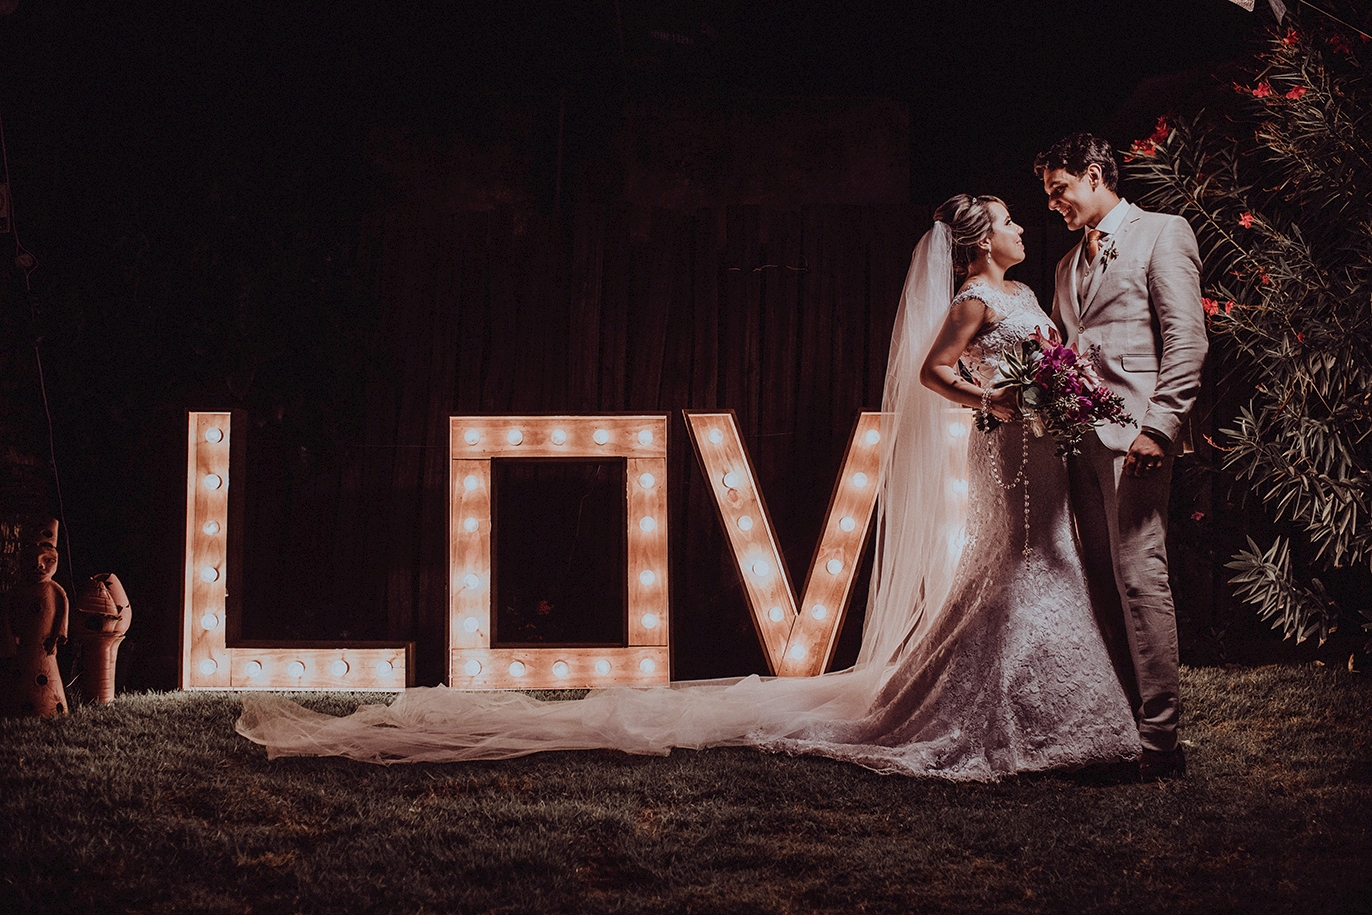 What are my rights if my wedding is cancelled due to COVID-19?